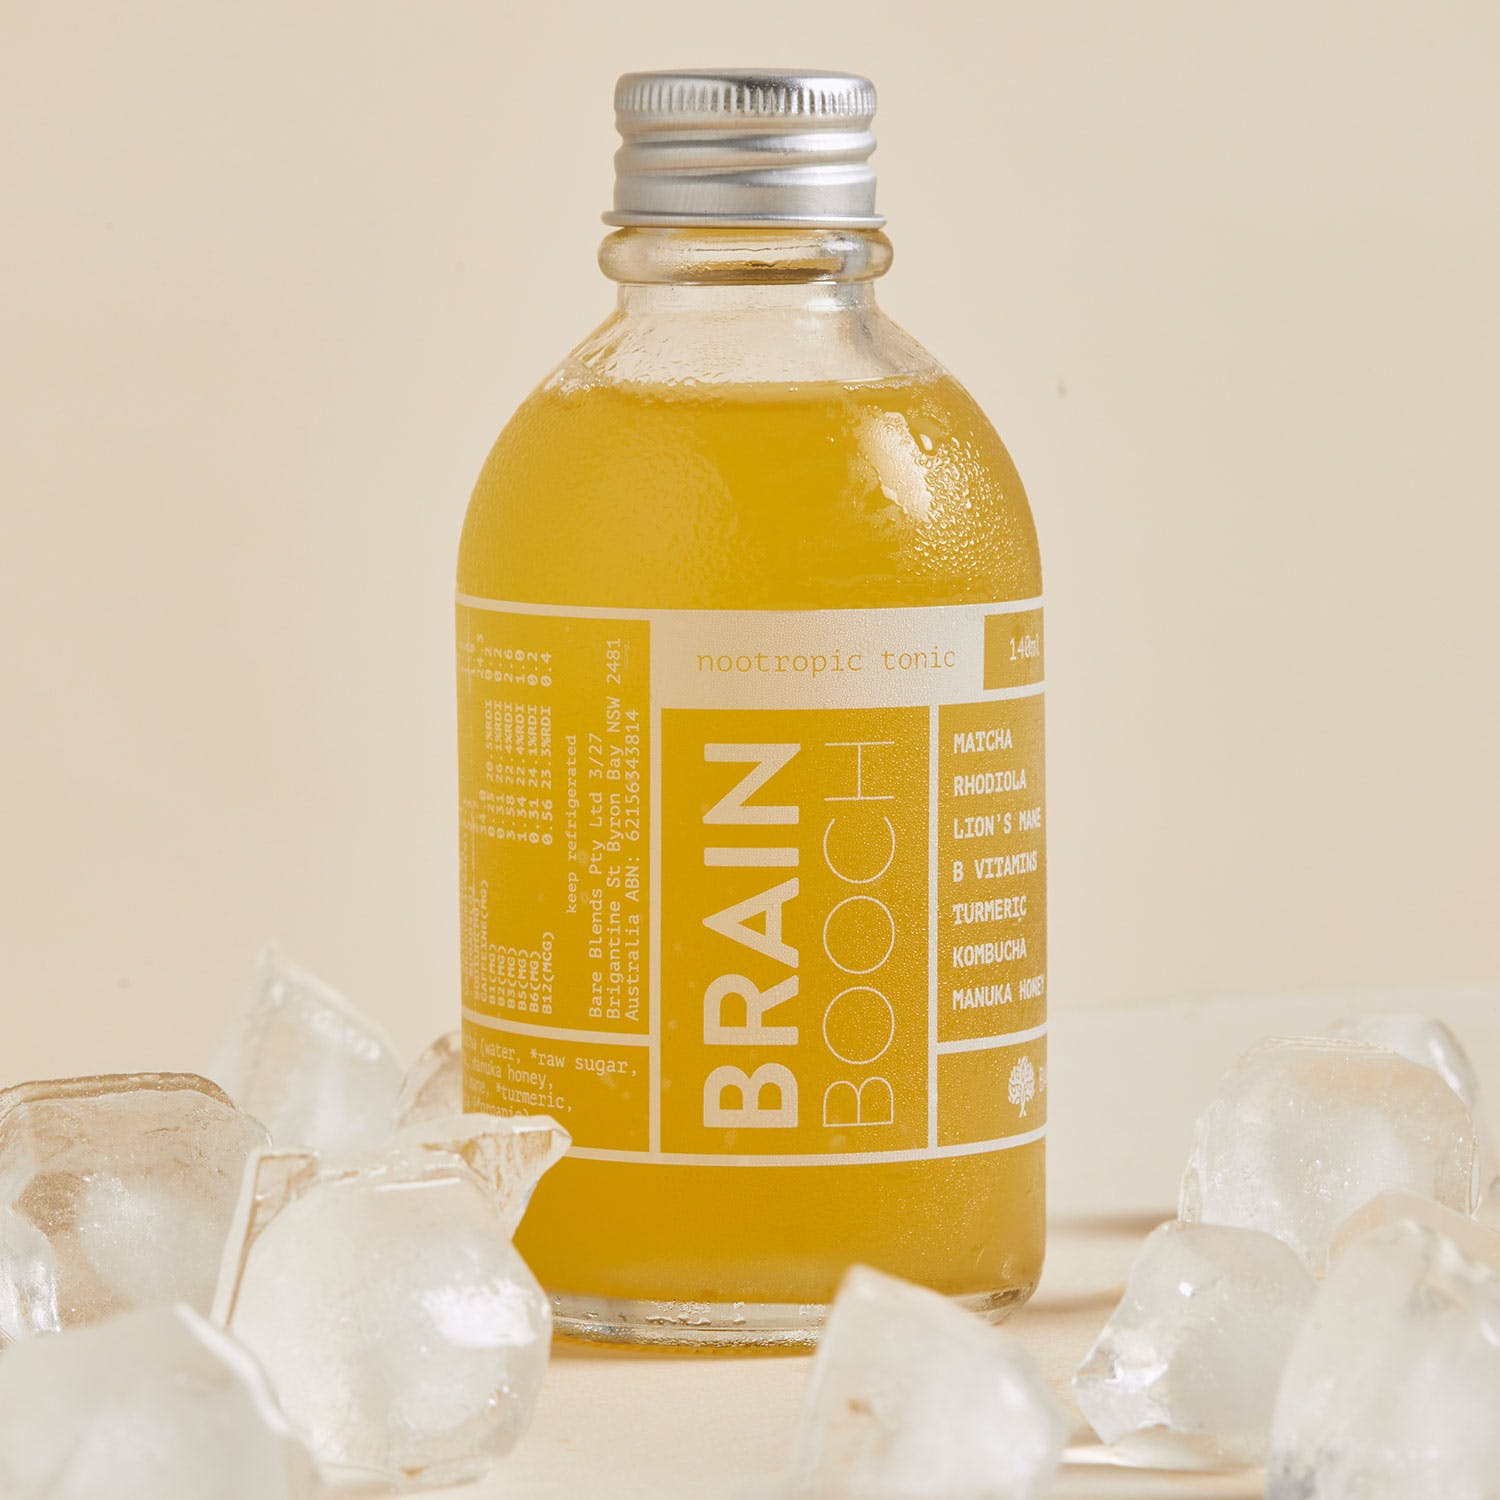 Brain Booch nootropic tonic